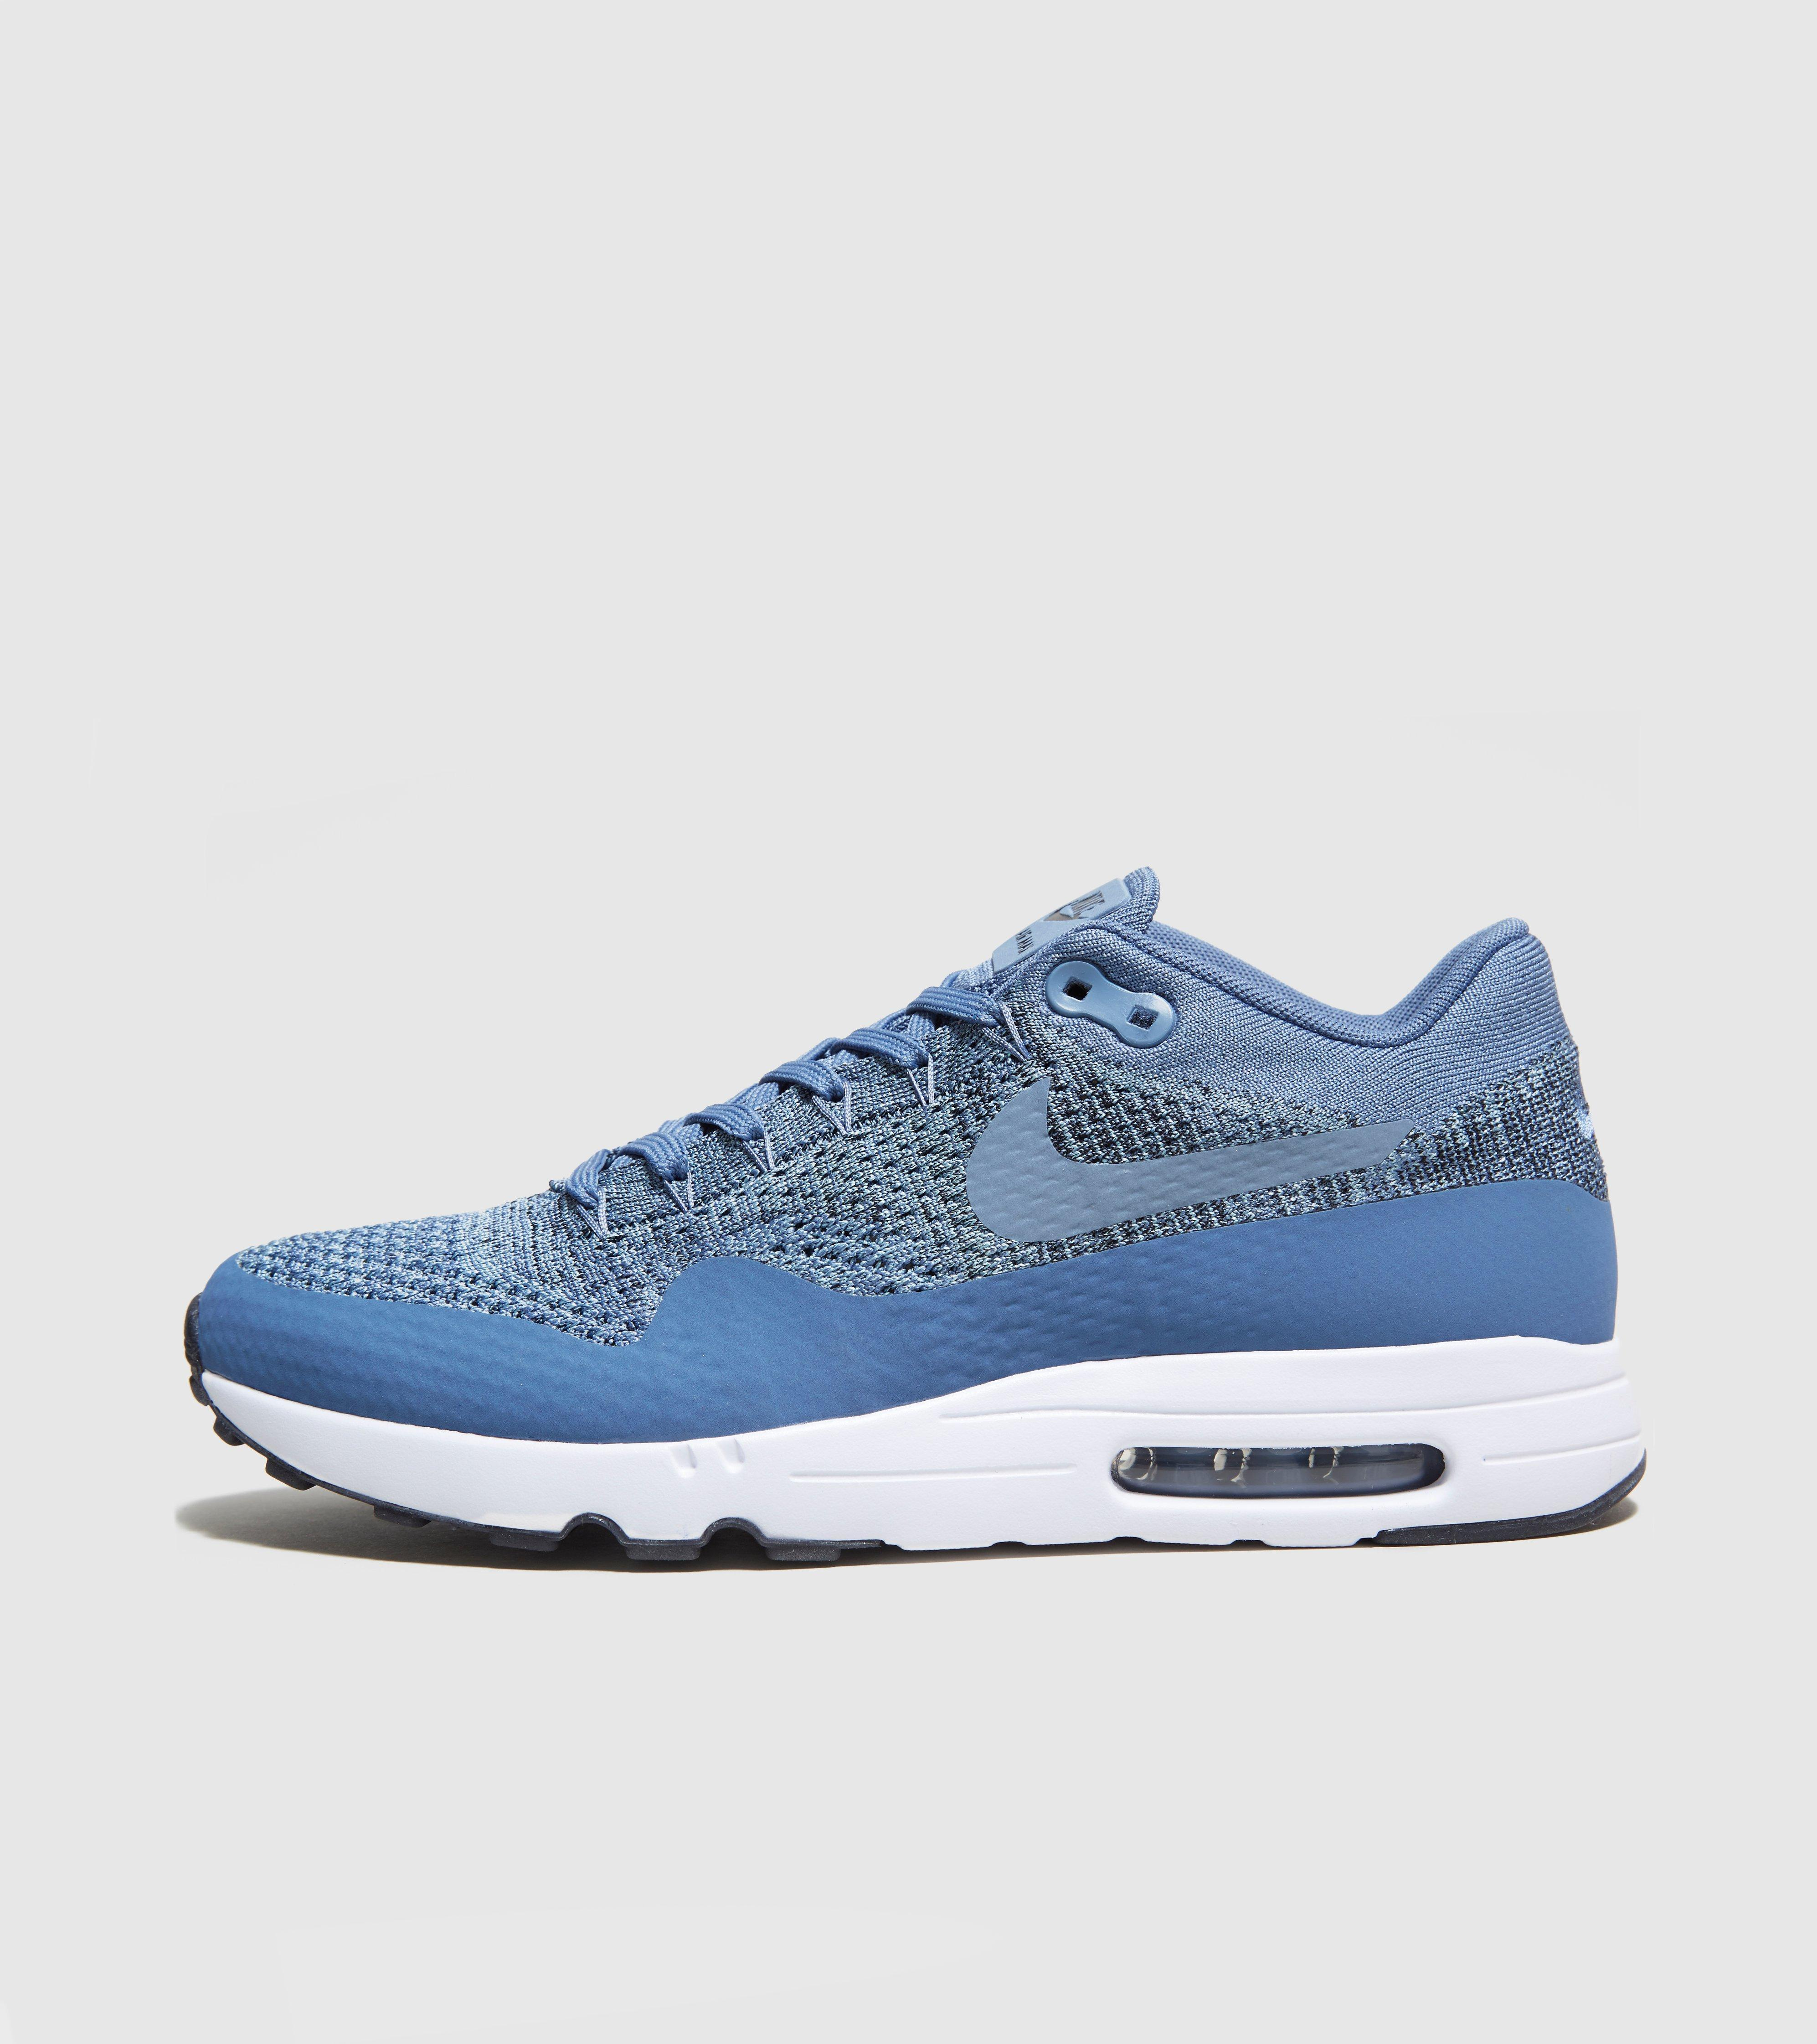 lyst nike air max 1 ultra flyknit in blue for men. Black Bedroom Furniture Sets. Home Design Ideas